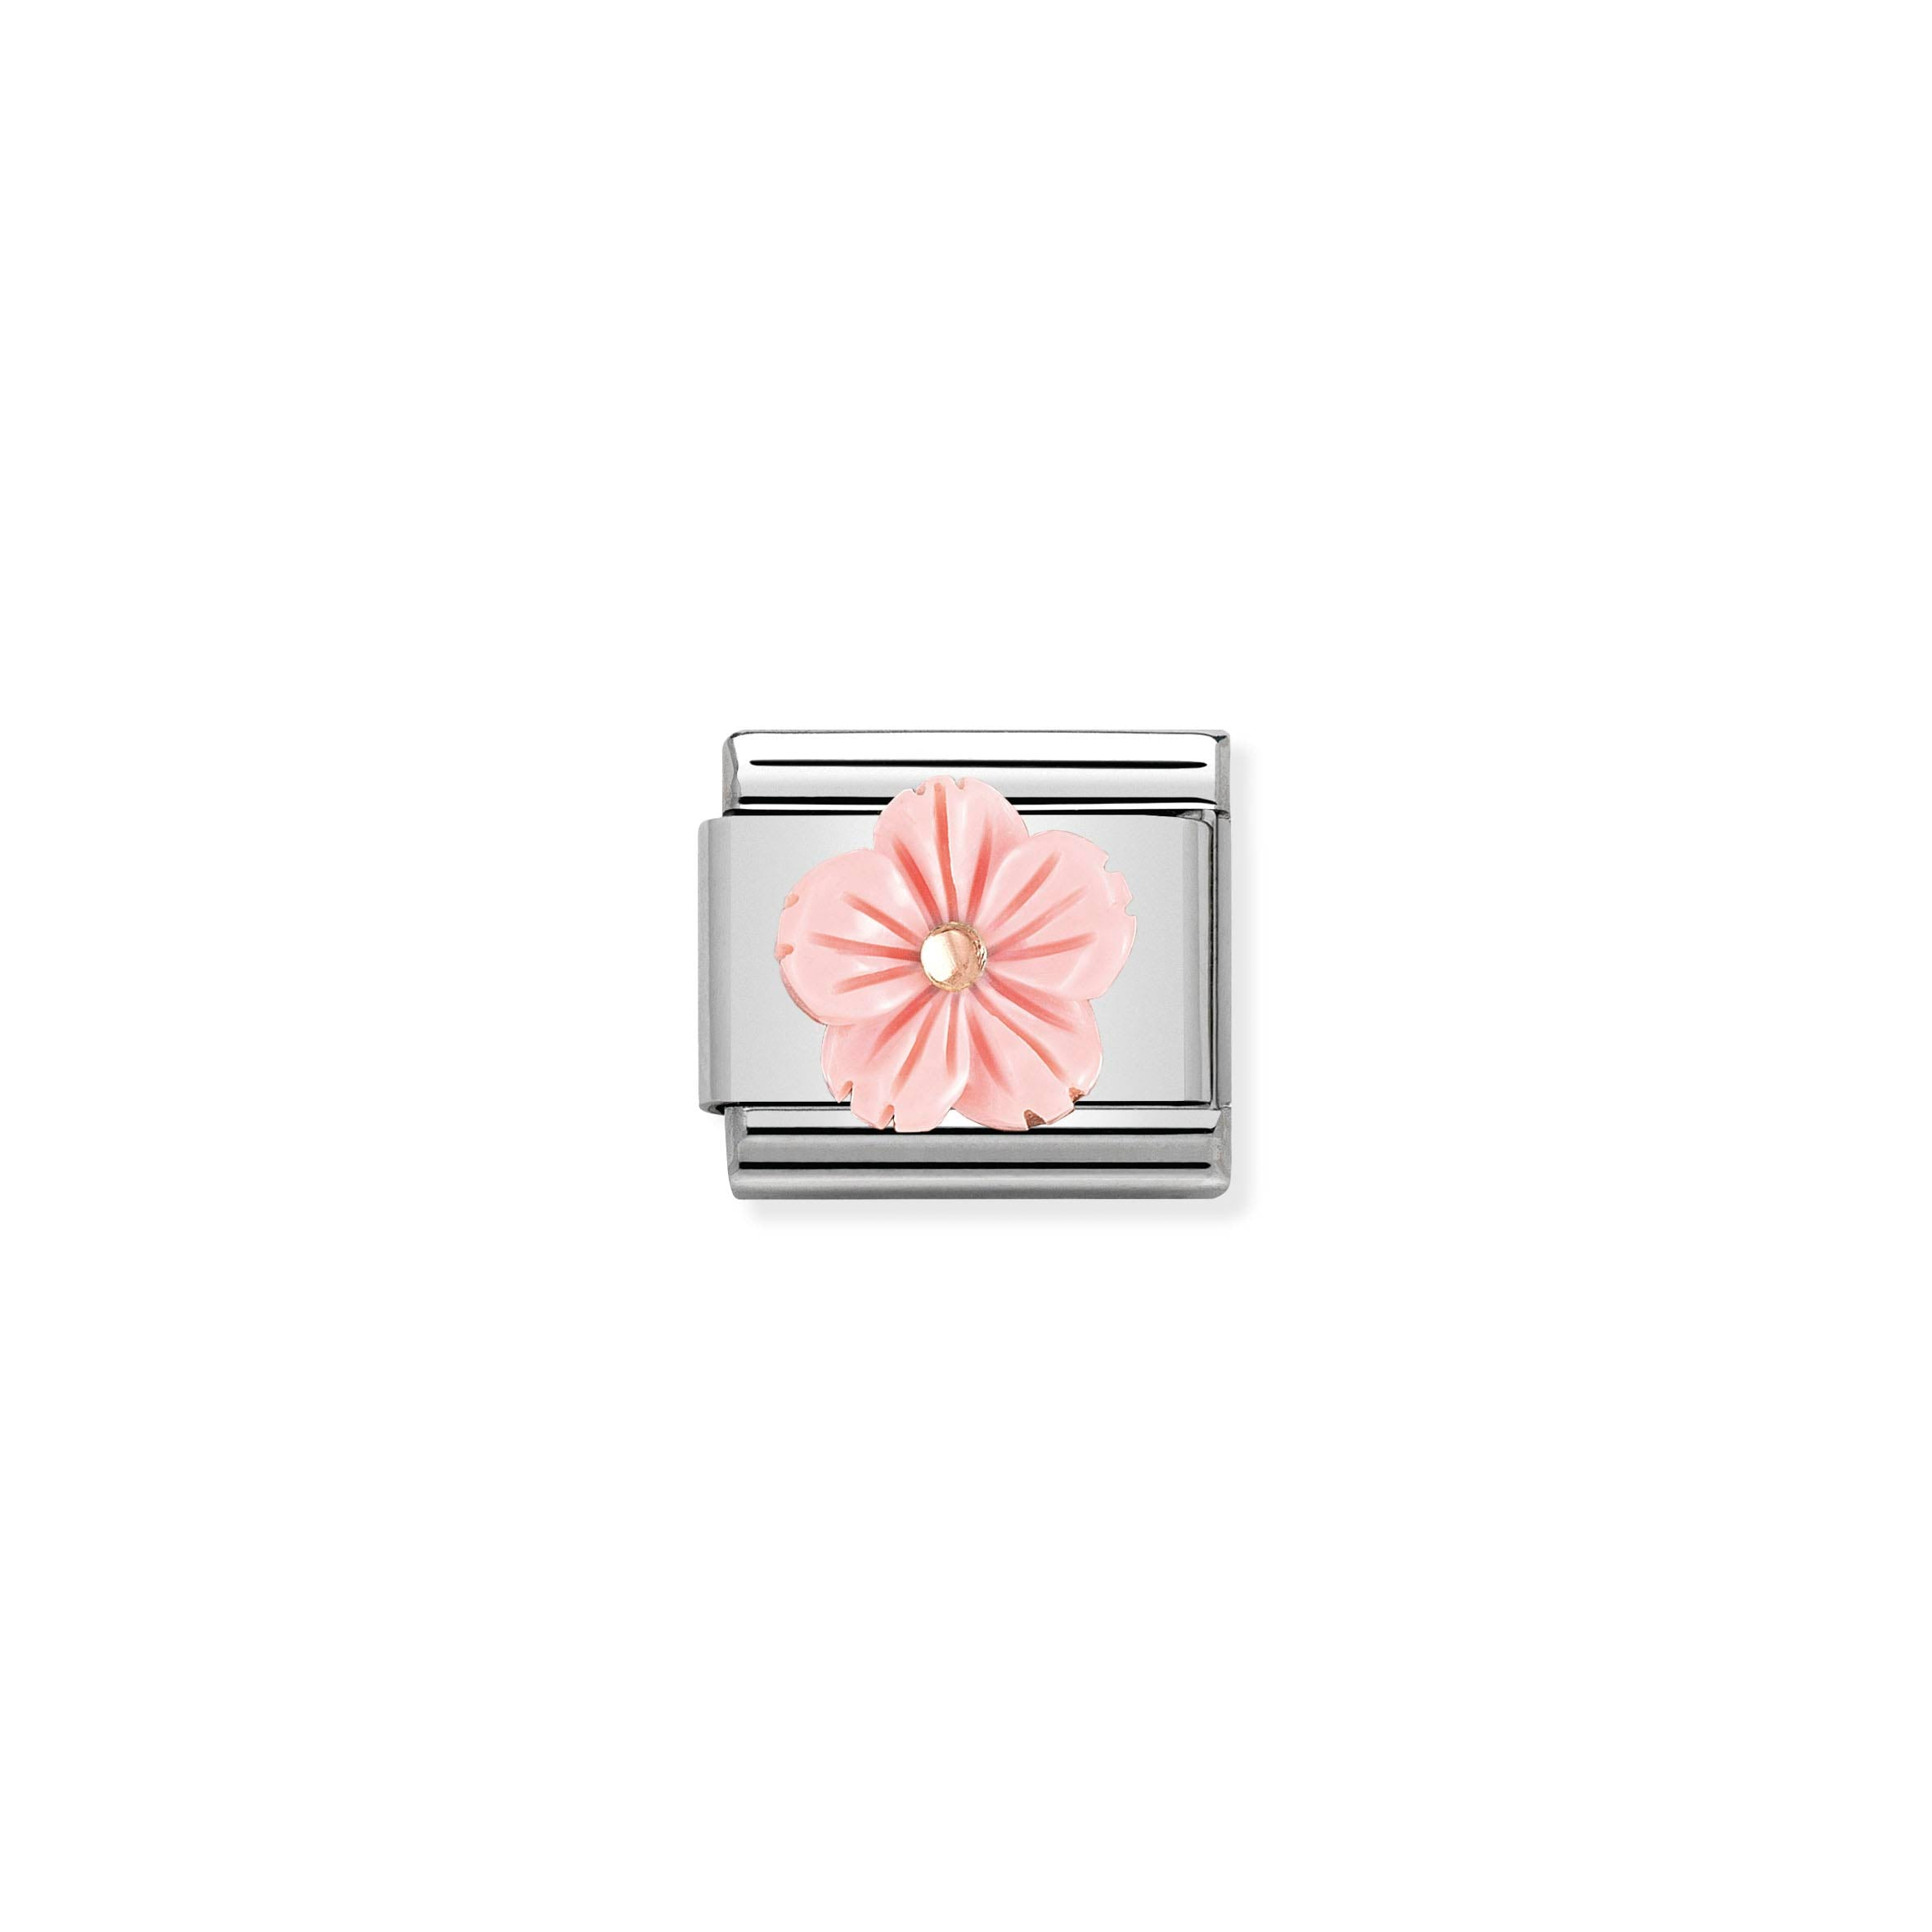 NOMINATION - Composable Classic STONE SYMBOLS st/steel, 9ct rose gold (Flower in Rose Coral)